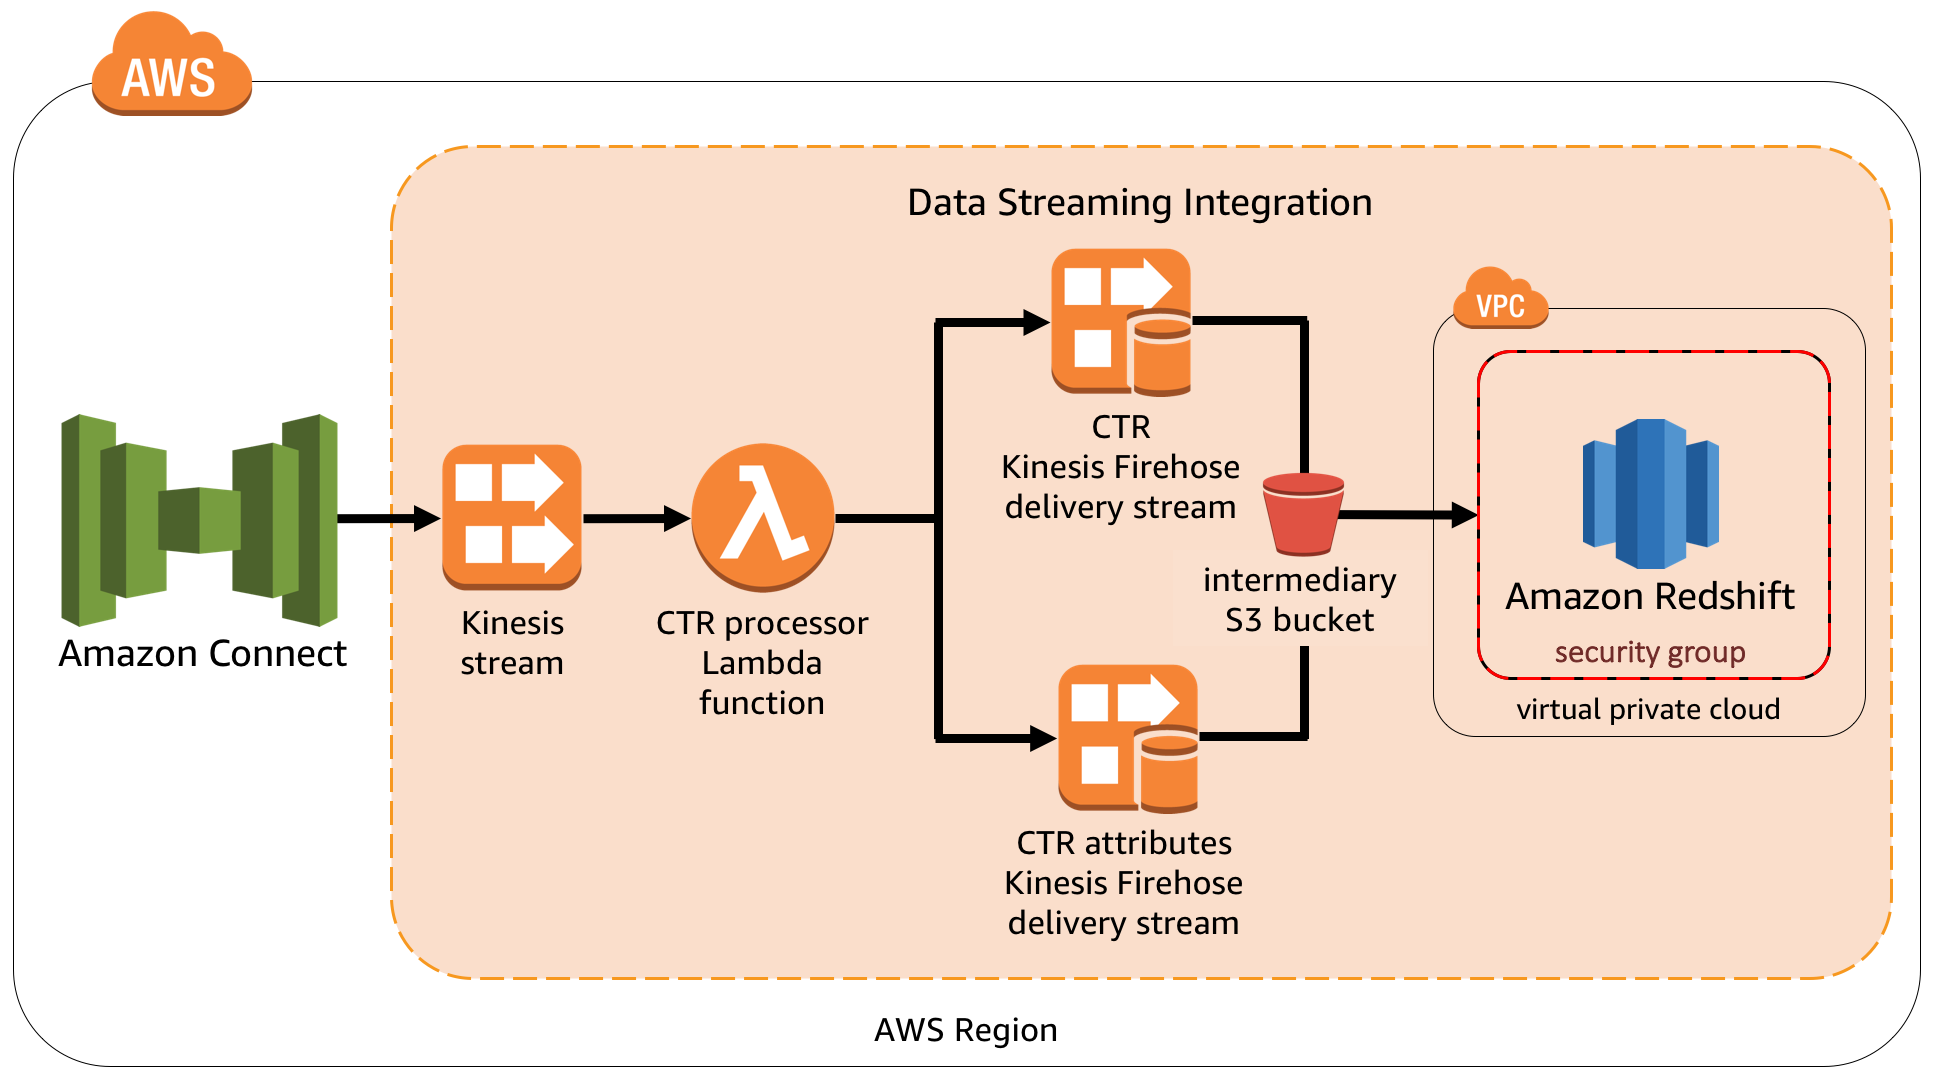 Architecture for data streaming integration